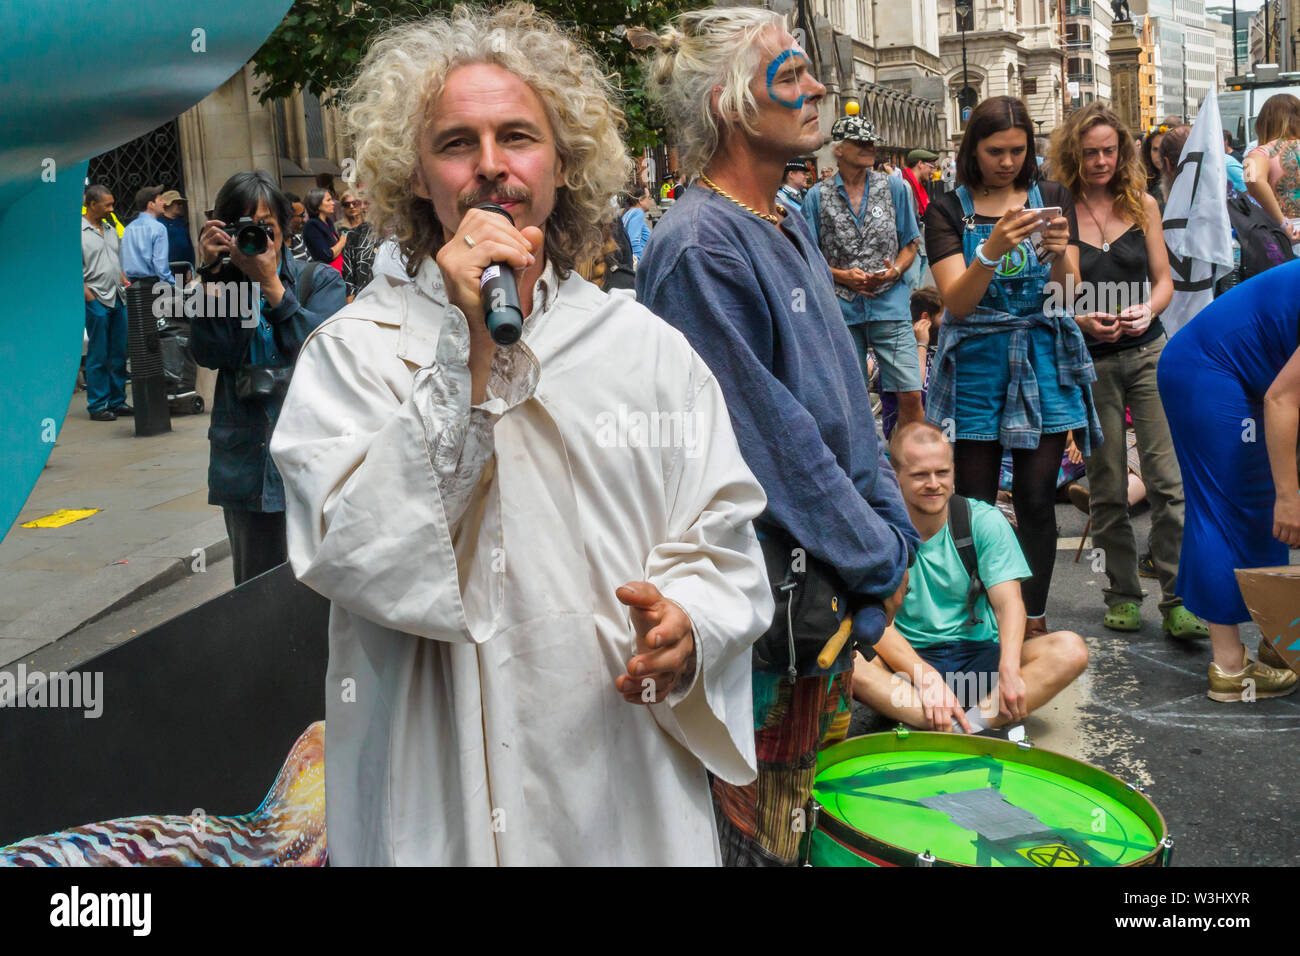 London, UK. 15th July, 2019. A druid presides in a ceremony against ecocide. Extinction Rebellion begins another series of protests in five major cities against the criminal inaction by the government on climate and ecological collapse. The protesters brought a yacht named after Polly Higgins who fought for years for an Ecocide Law to the Royal Courts of Justice and continued her fight blocking the Strand all day with performances, discussions, speeches, music and ceremonies in front of the yacht. Credit: Peter Marshall/Alamy Live News - Stock Image